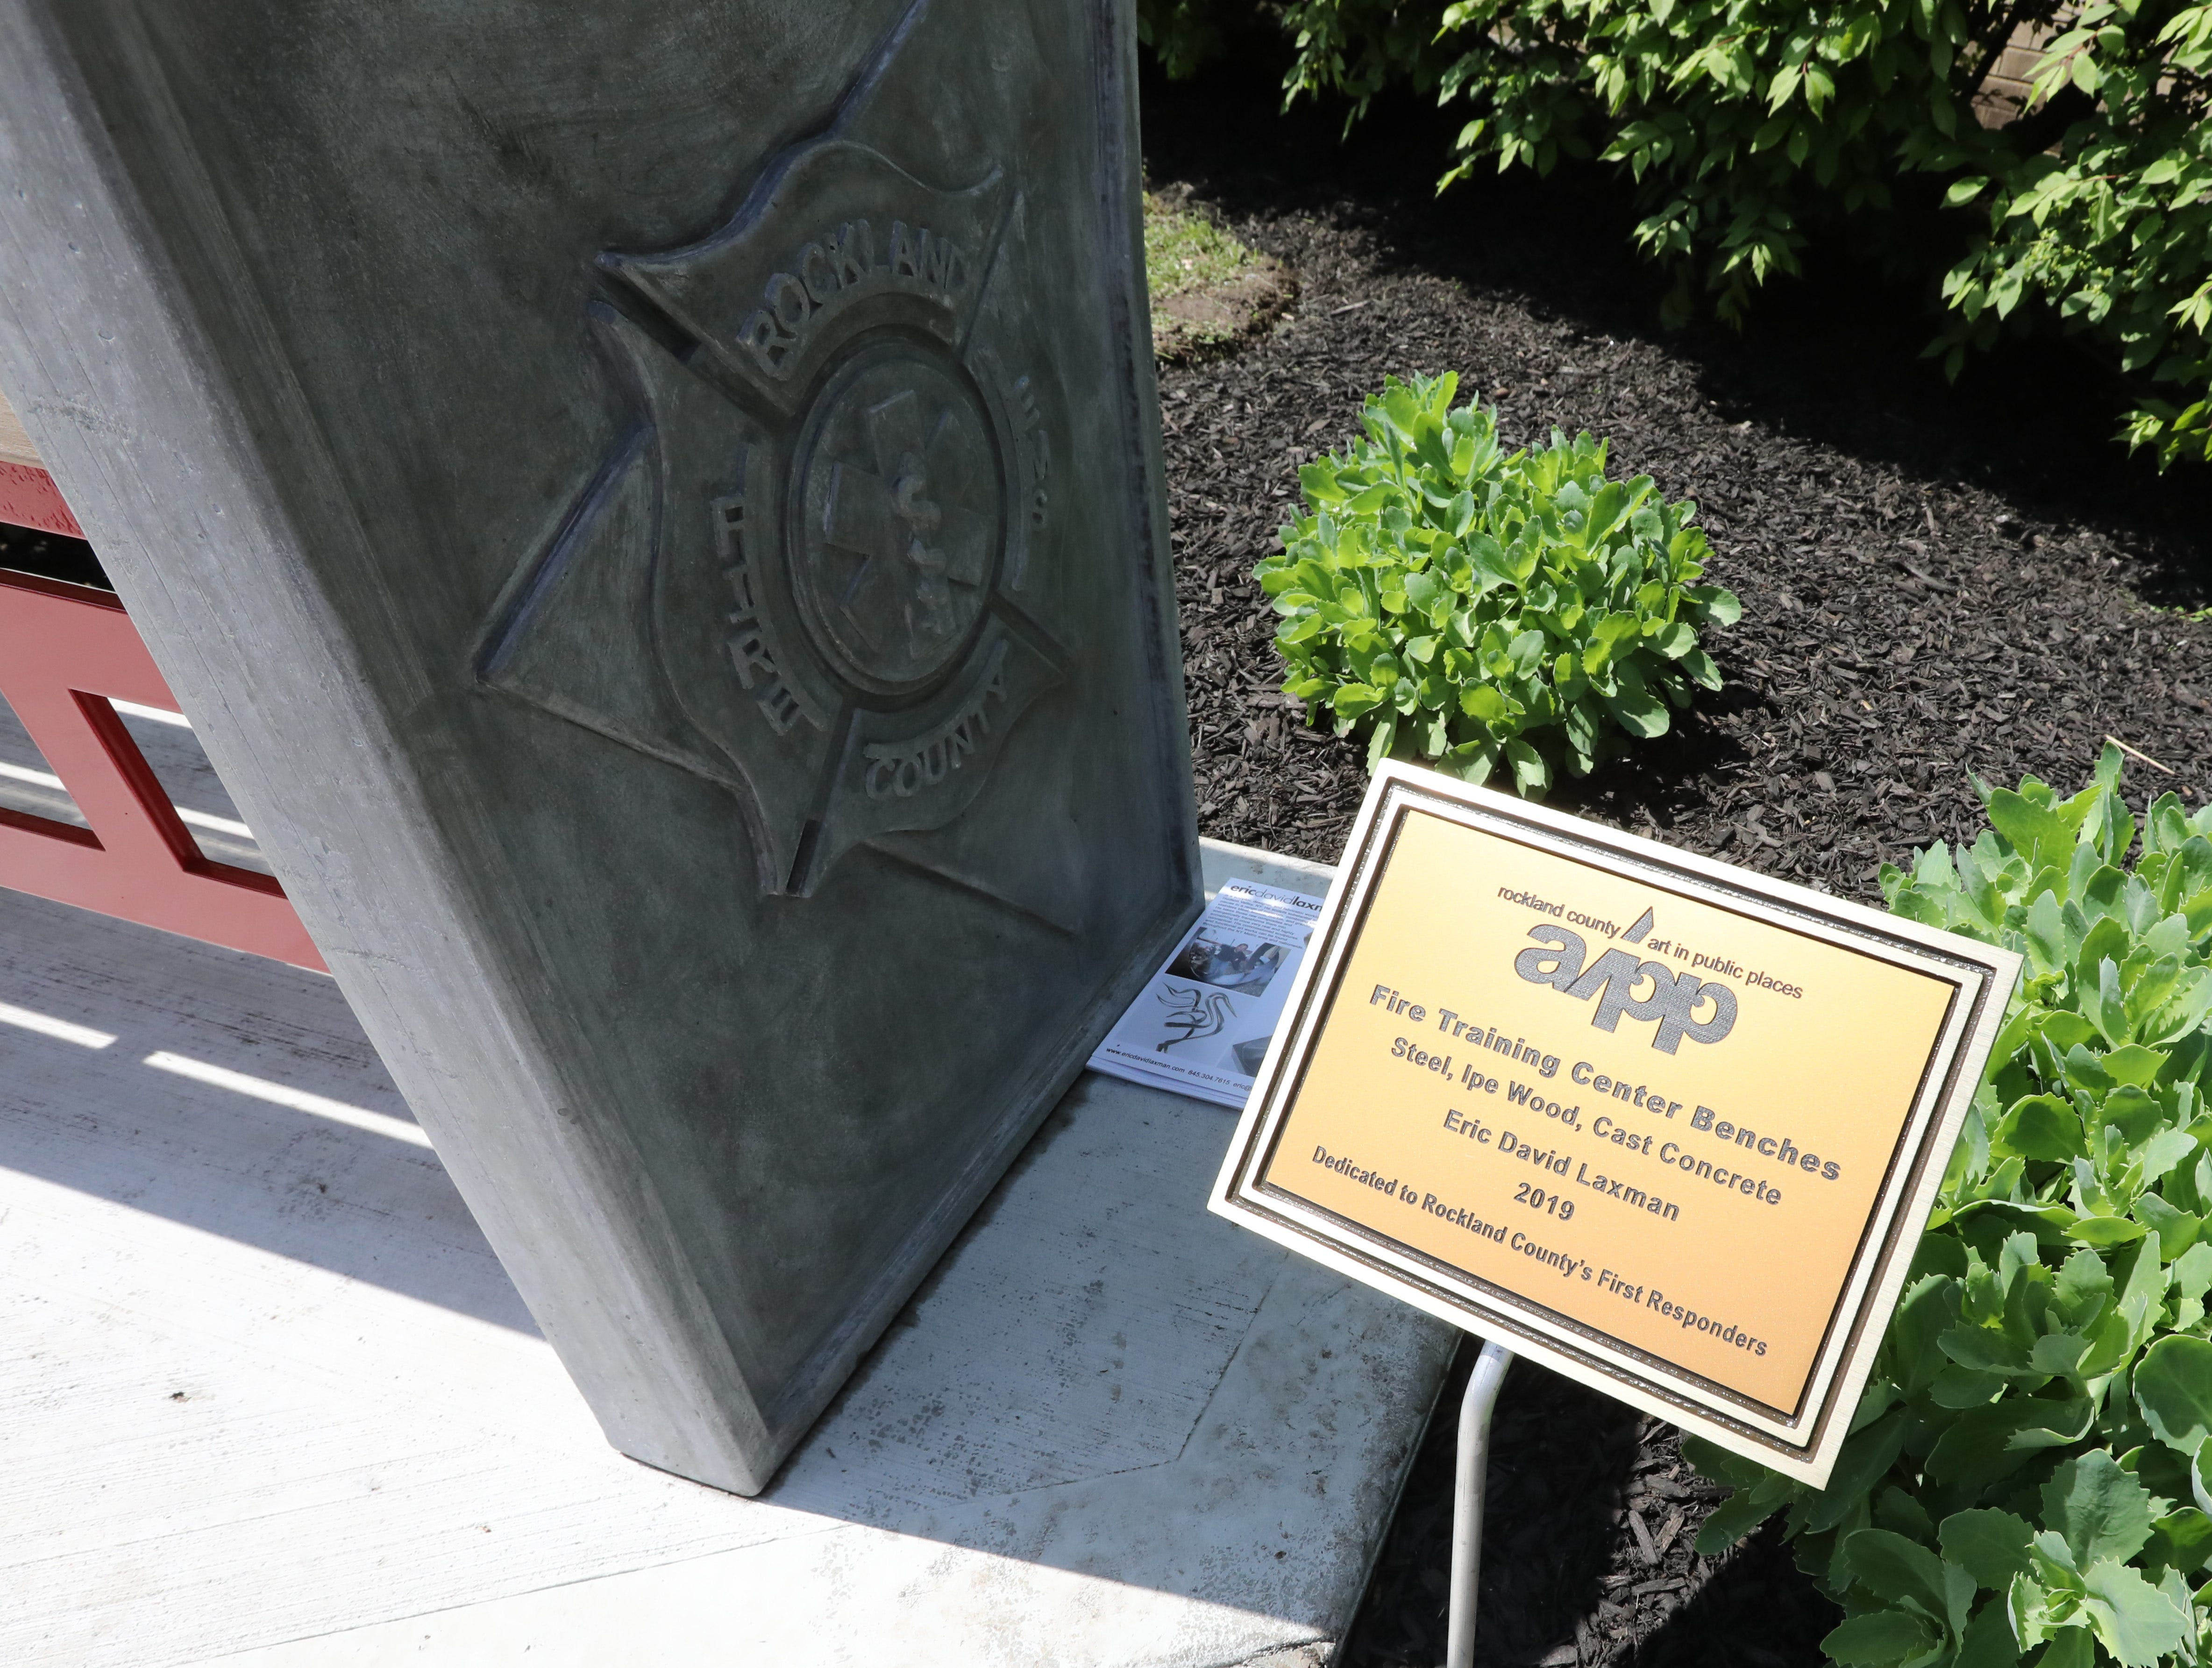 Two commemorative benches by 